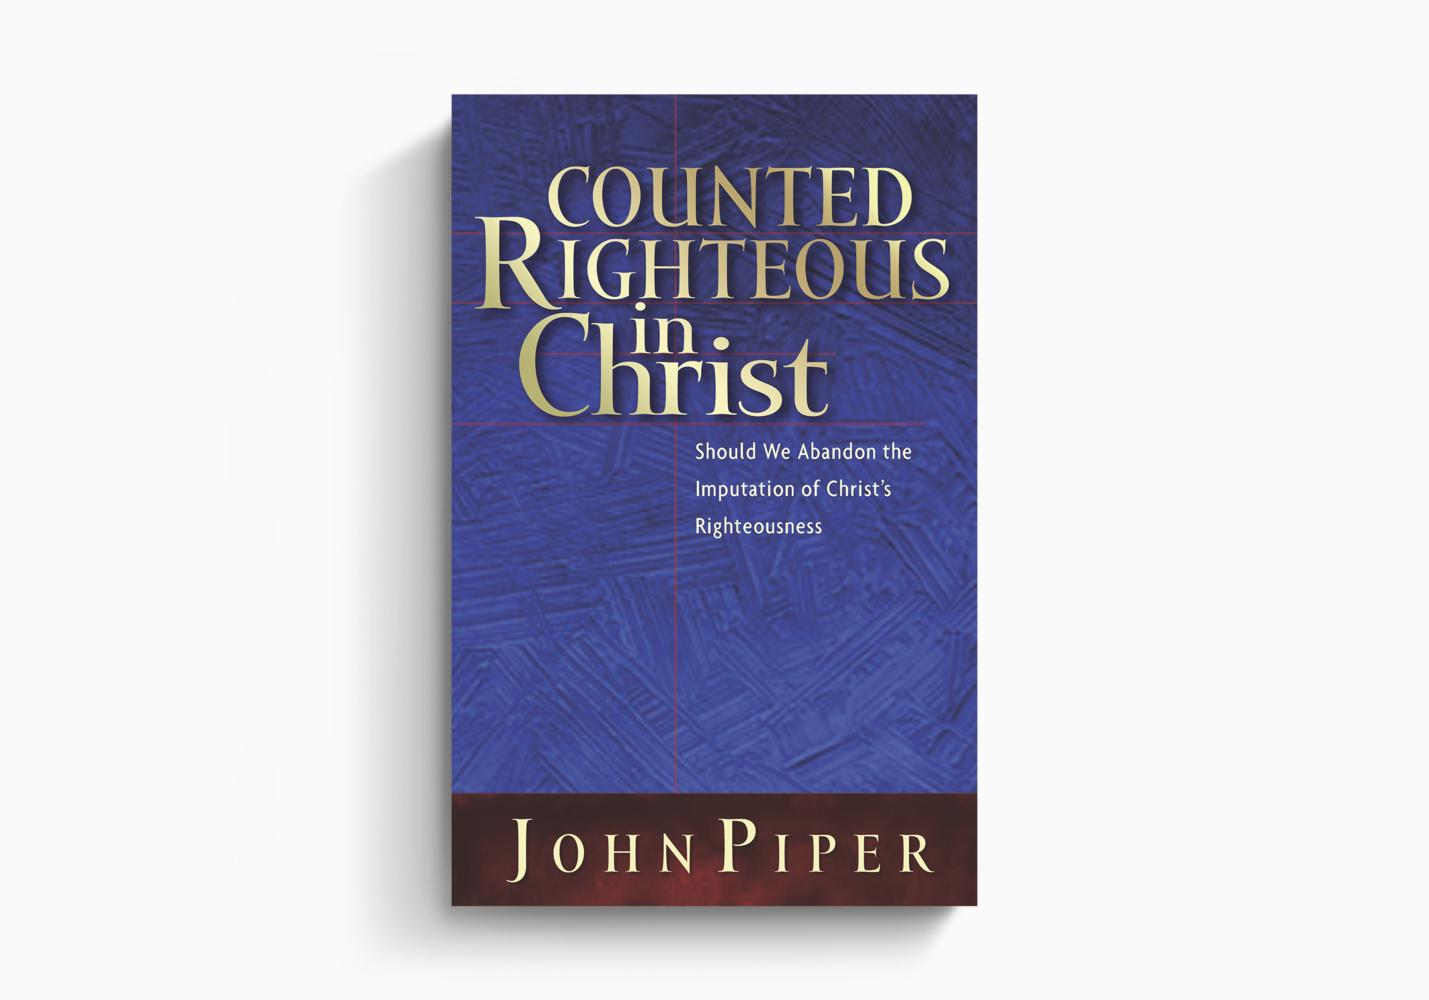 Counted Righteous in Christ